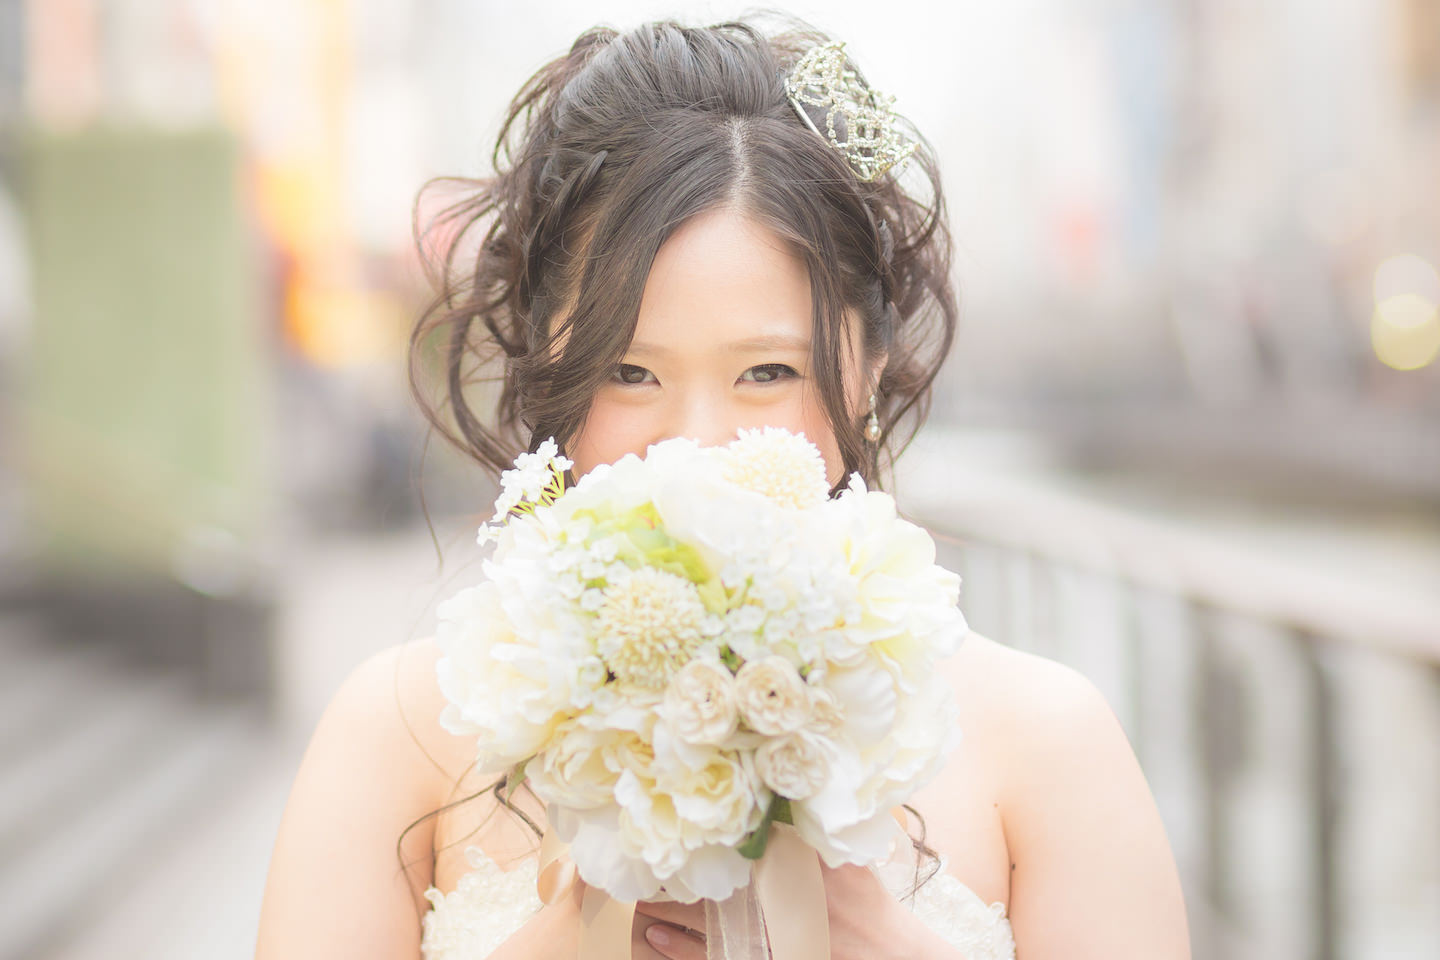 Pre-wedding photo of a woman holding a white flower bouquet